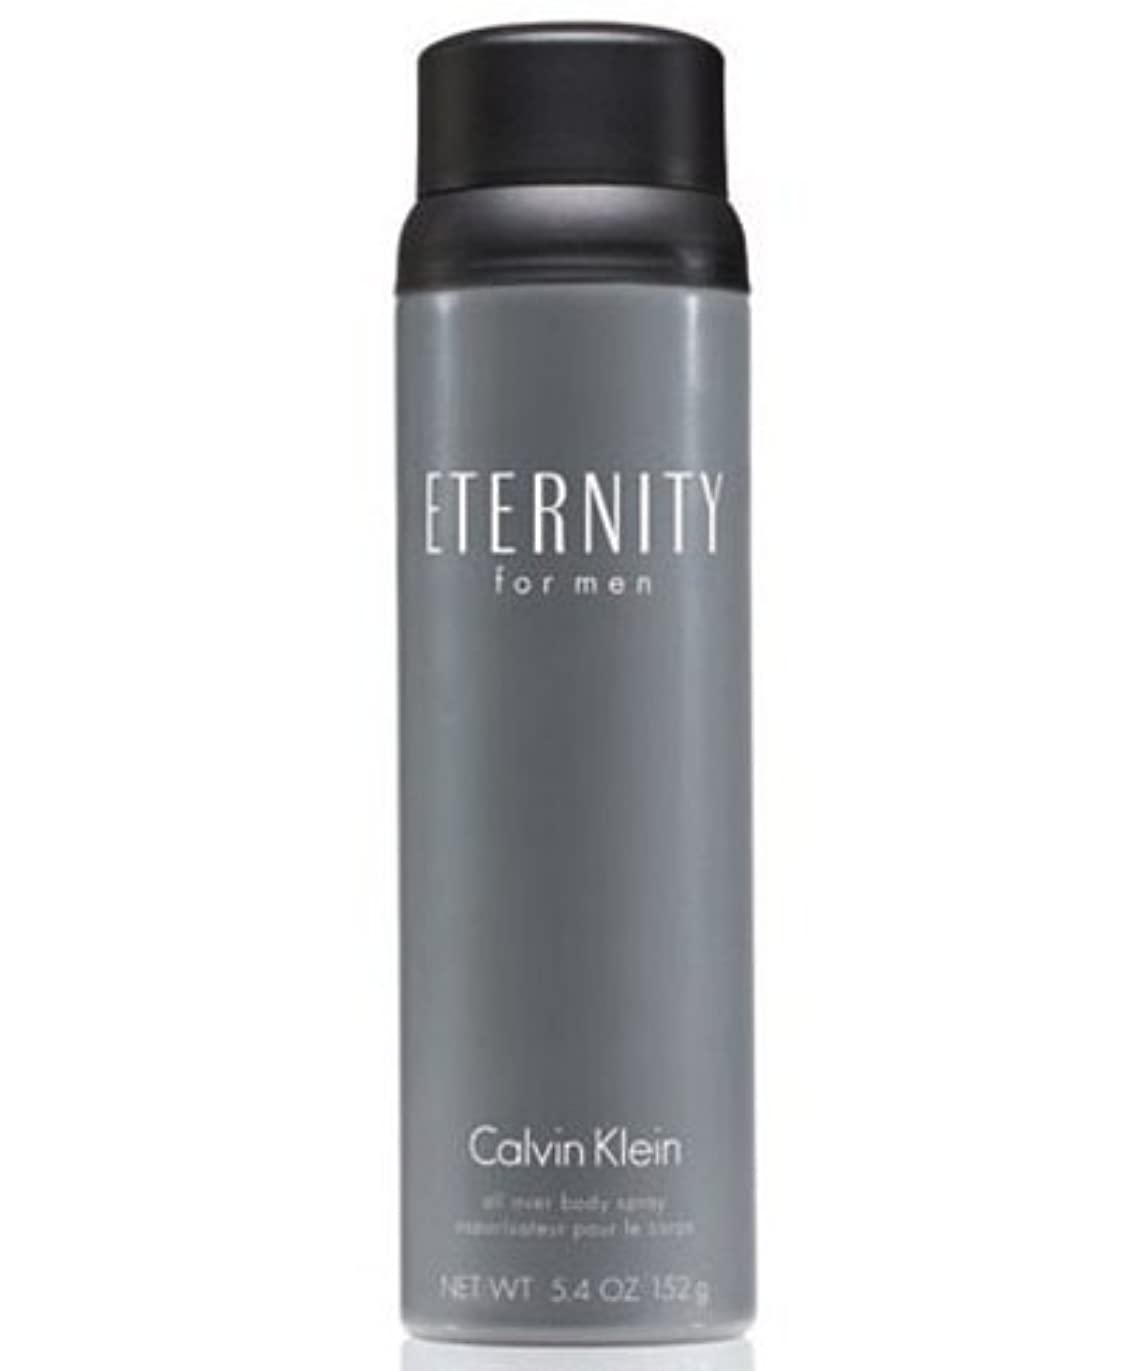 解釈的水っぽい嫌がらせEternity (エタニティー) 5.4 oz (162ml) Body Spray by Calvin Klein for Men